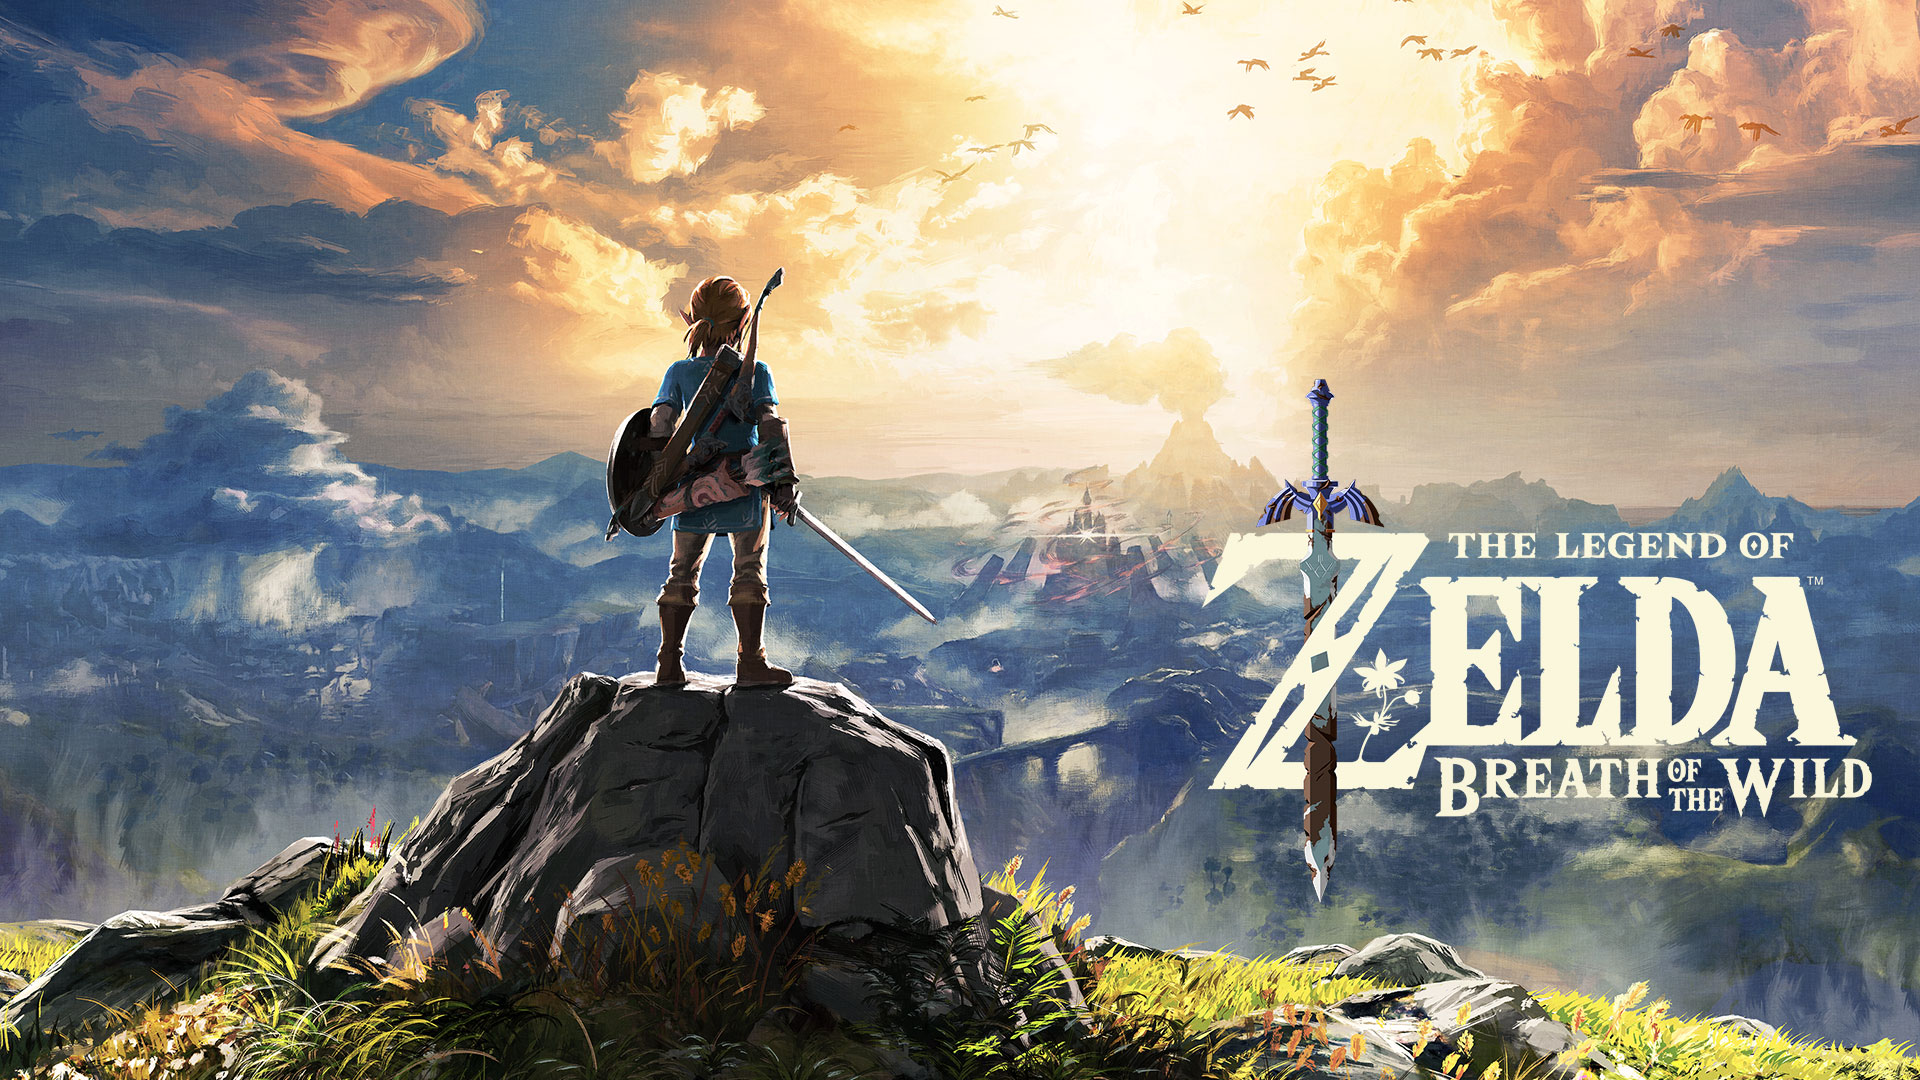 Breath of the Wild release date